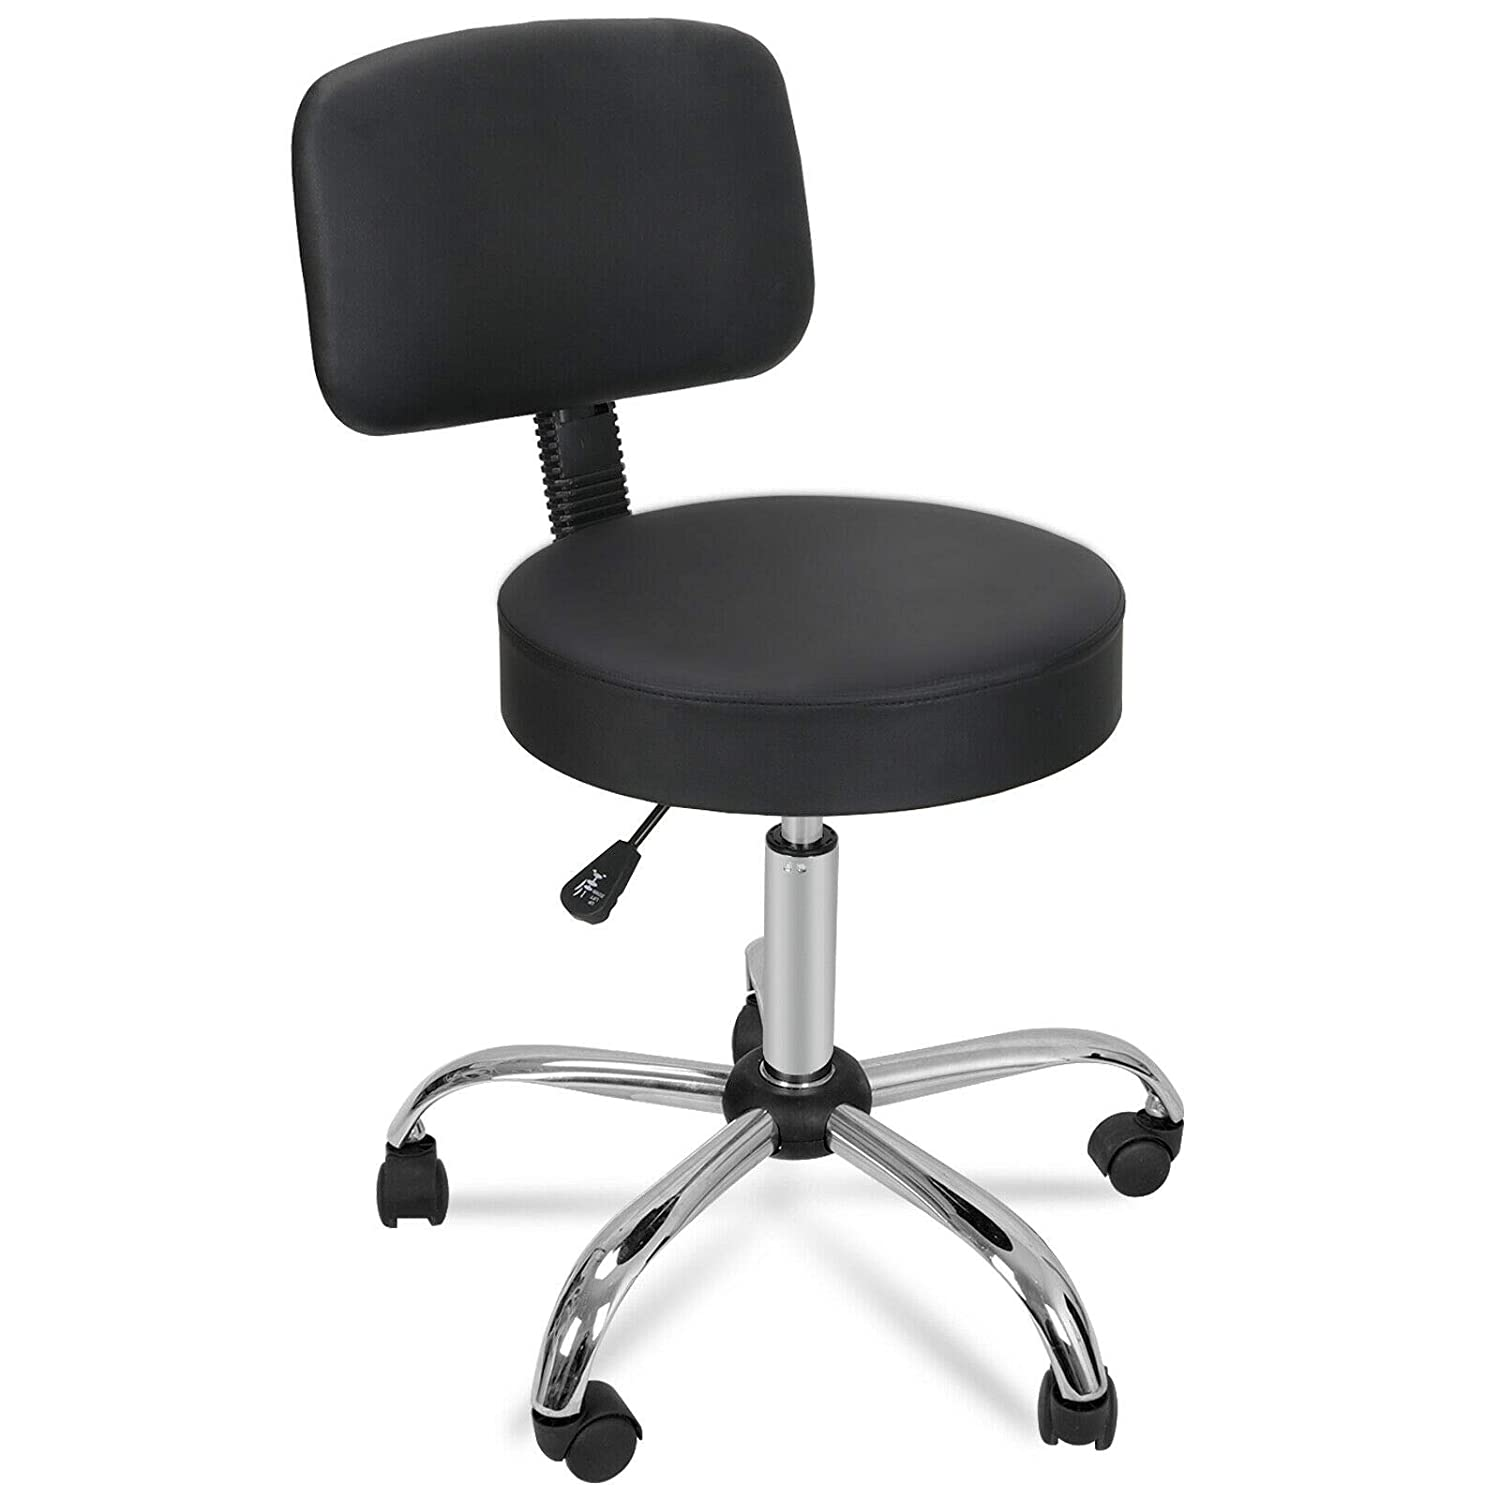 LordBee Massage Facial Wholesale Spa Stool Hydraulic Chair 5 ☆ very popular W Rolling Back